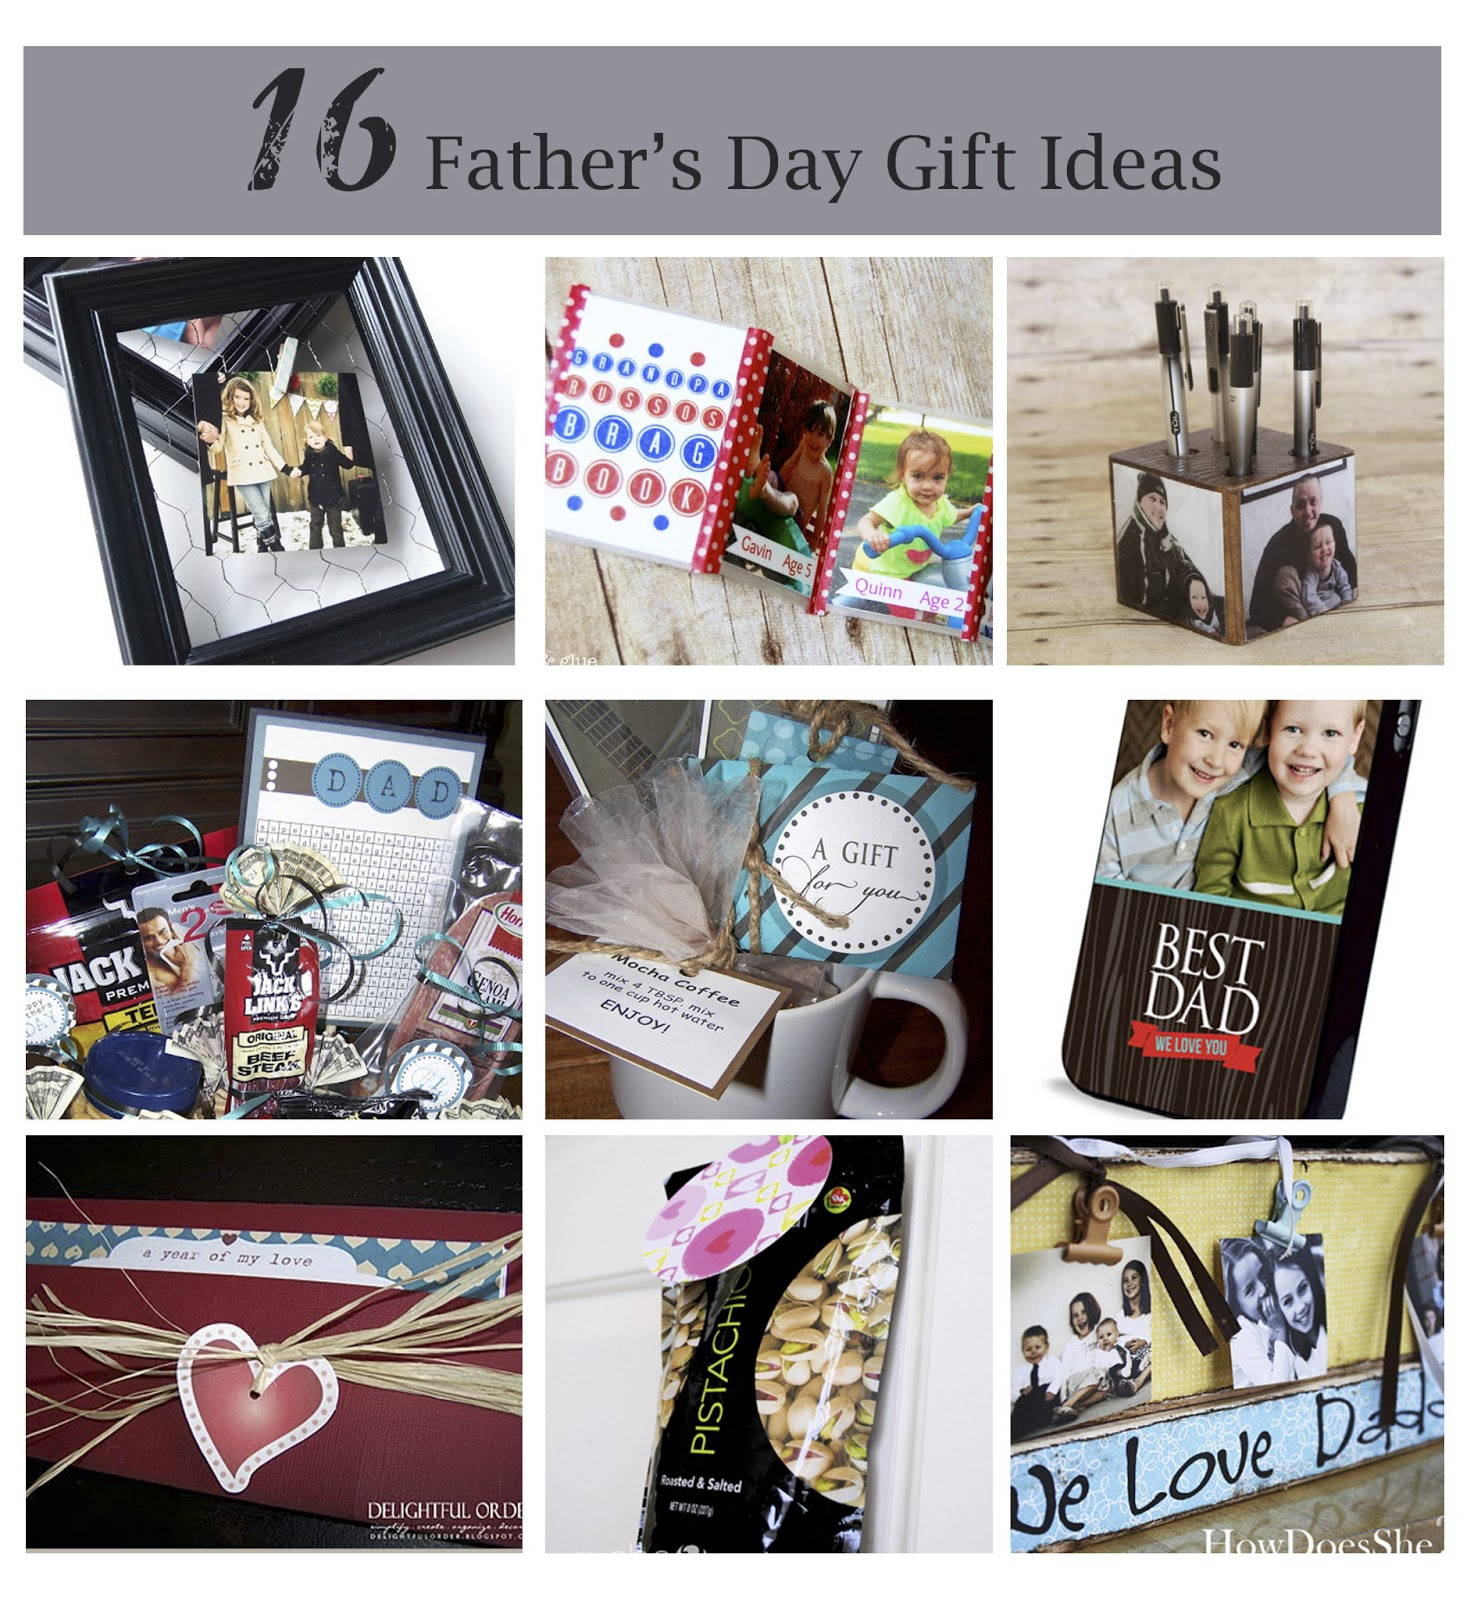 Best ideas about Unique Fathers Day Gift Ideas . Save or Pin 20 Best Father s Day Gift Ideas Now.